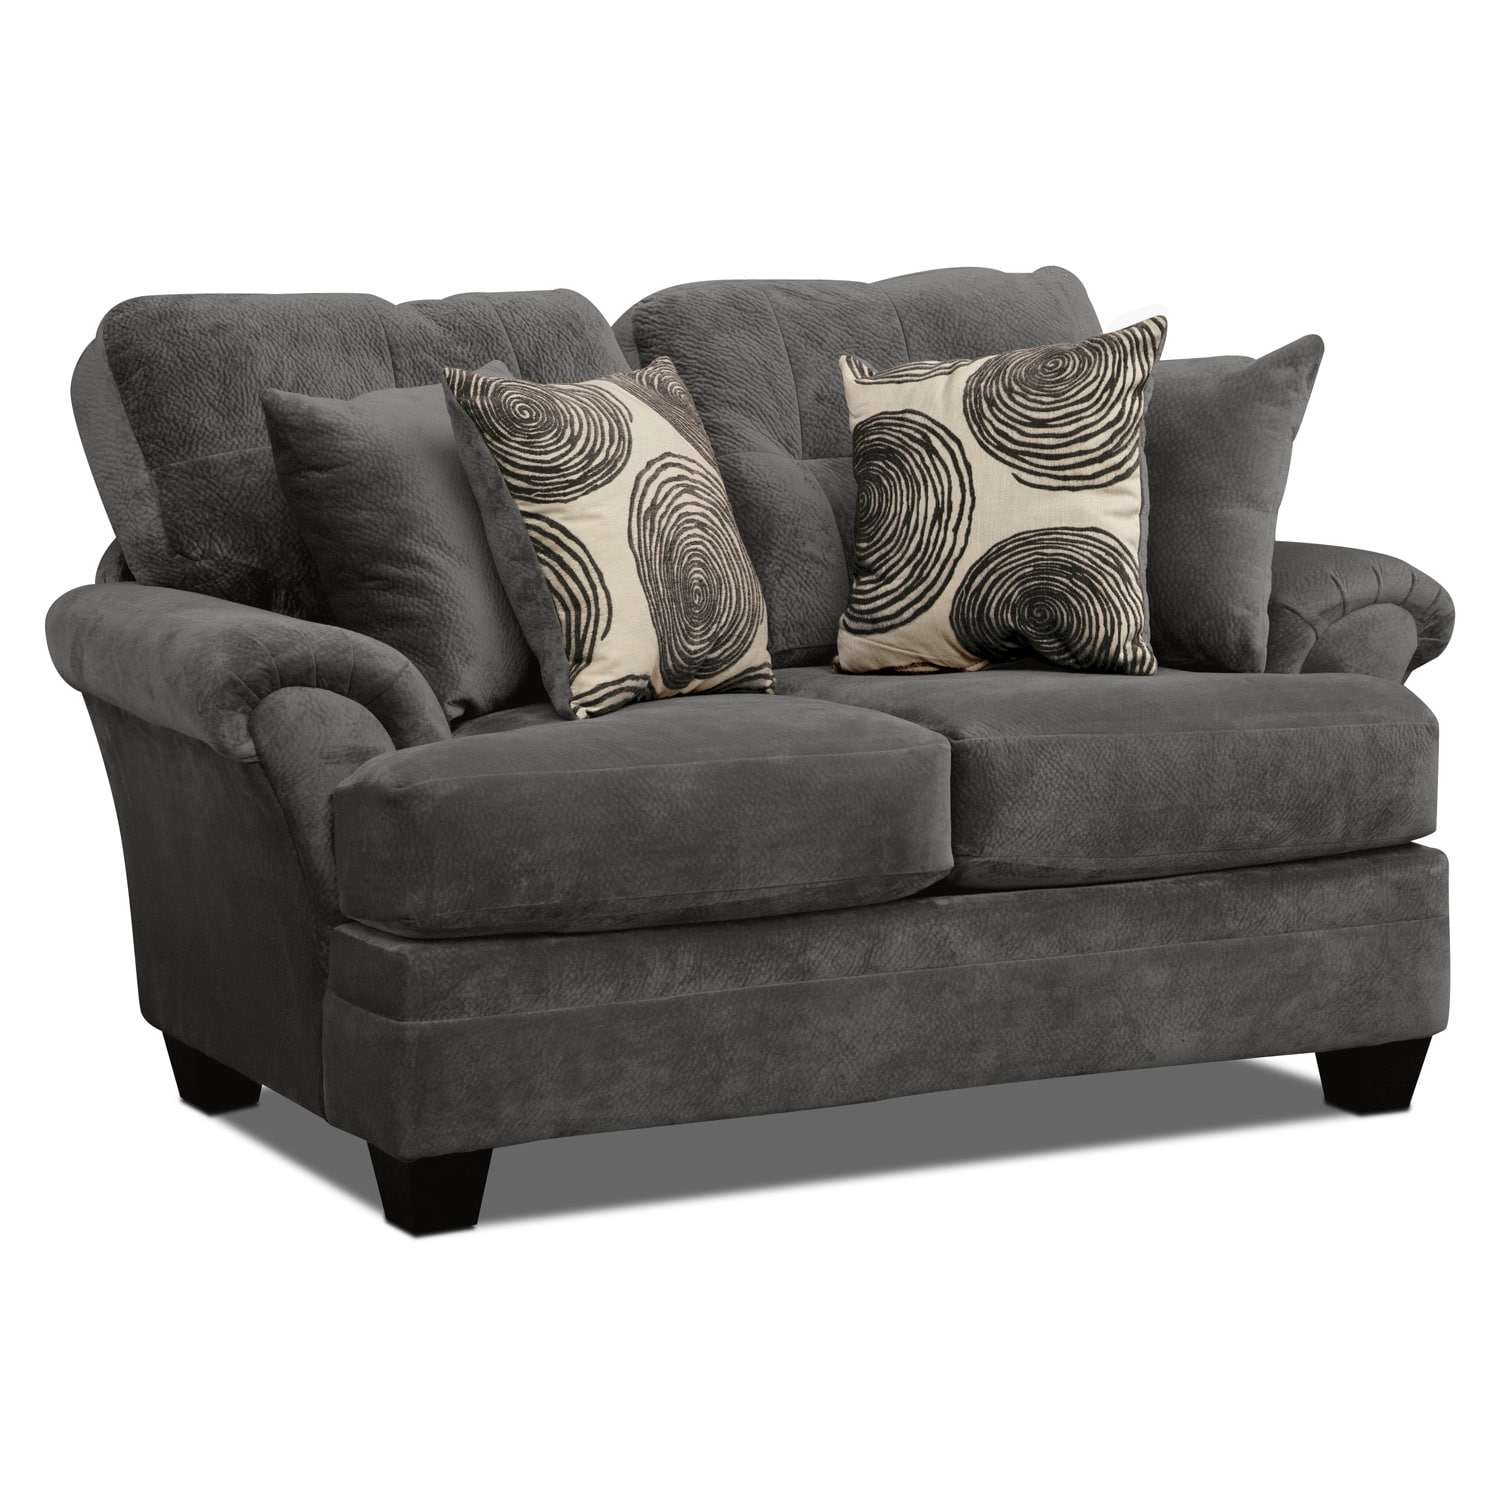 Living Room Furniture - Cordelle Loveseat - Gray